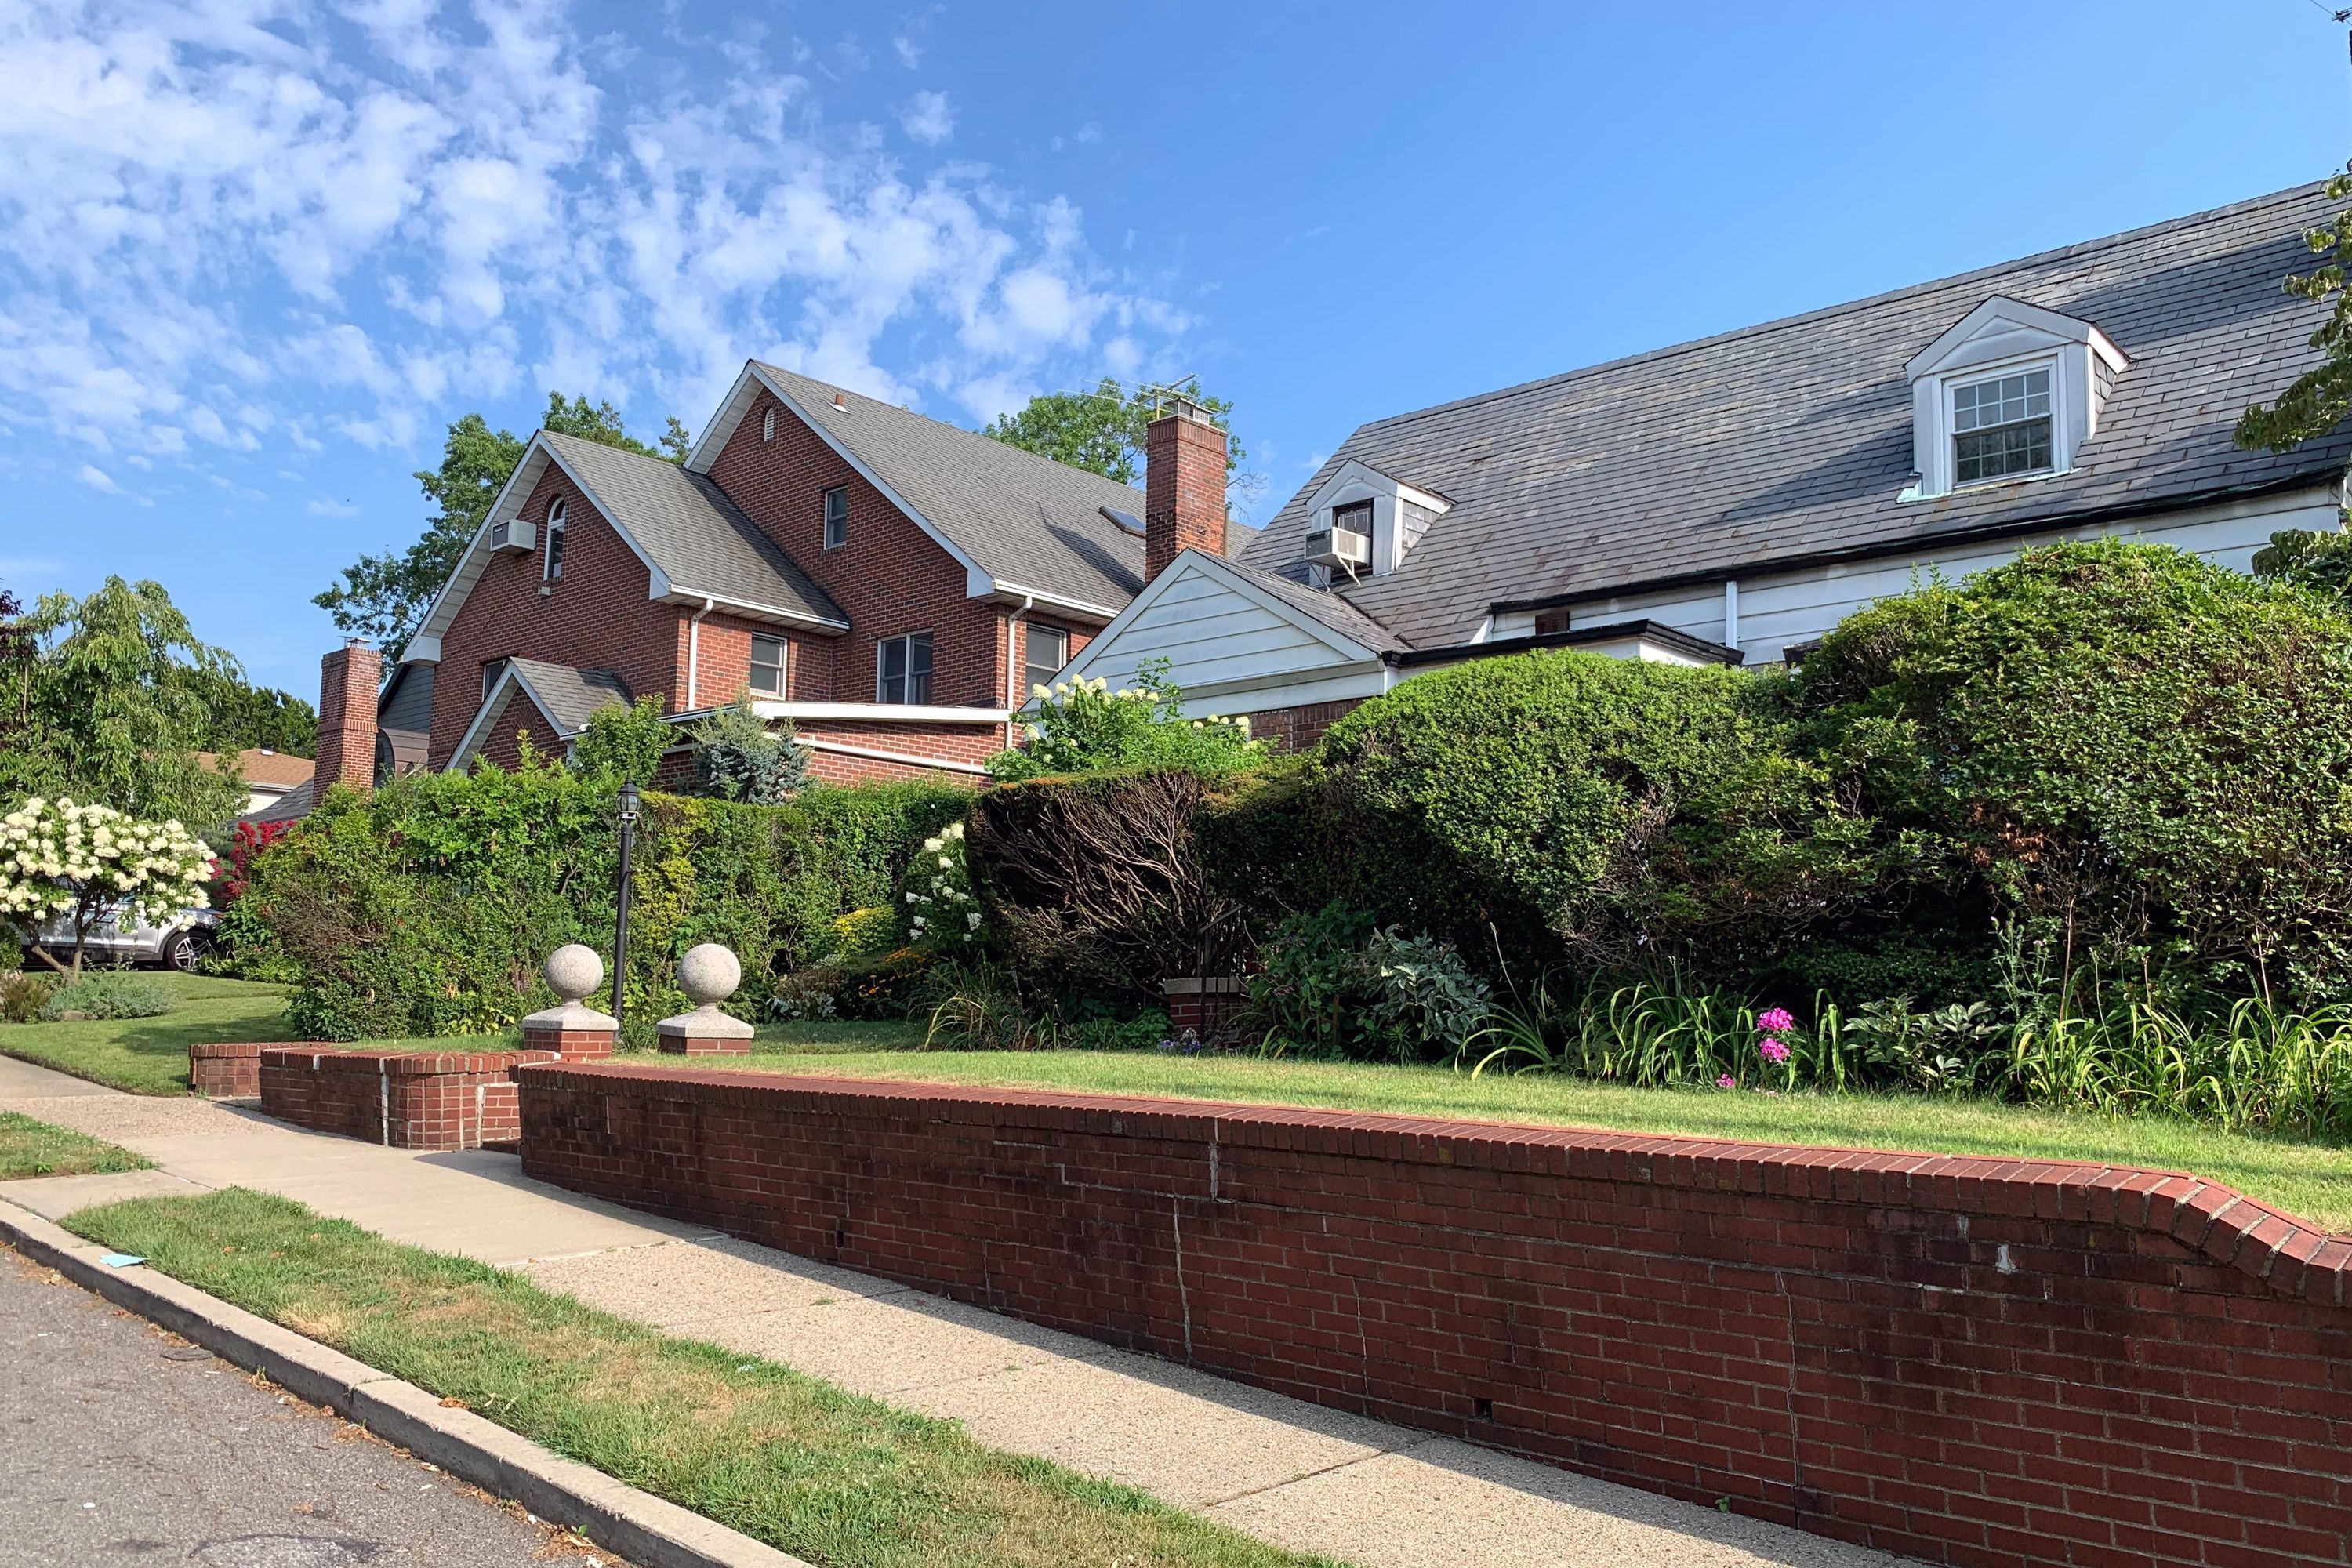 Homes in Kew Gardens Hills, Aug. 6, 2019.s